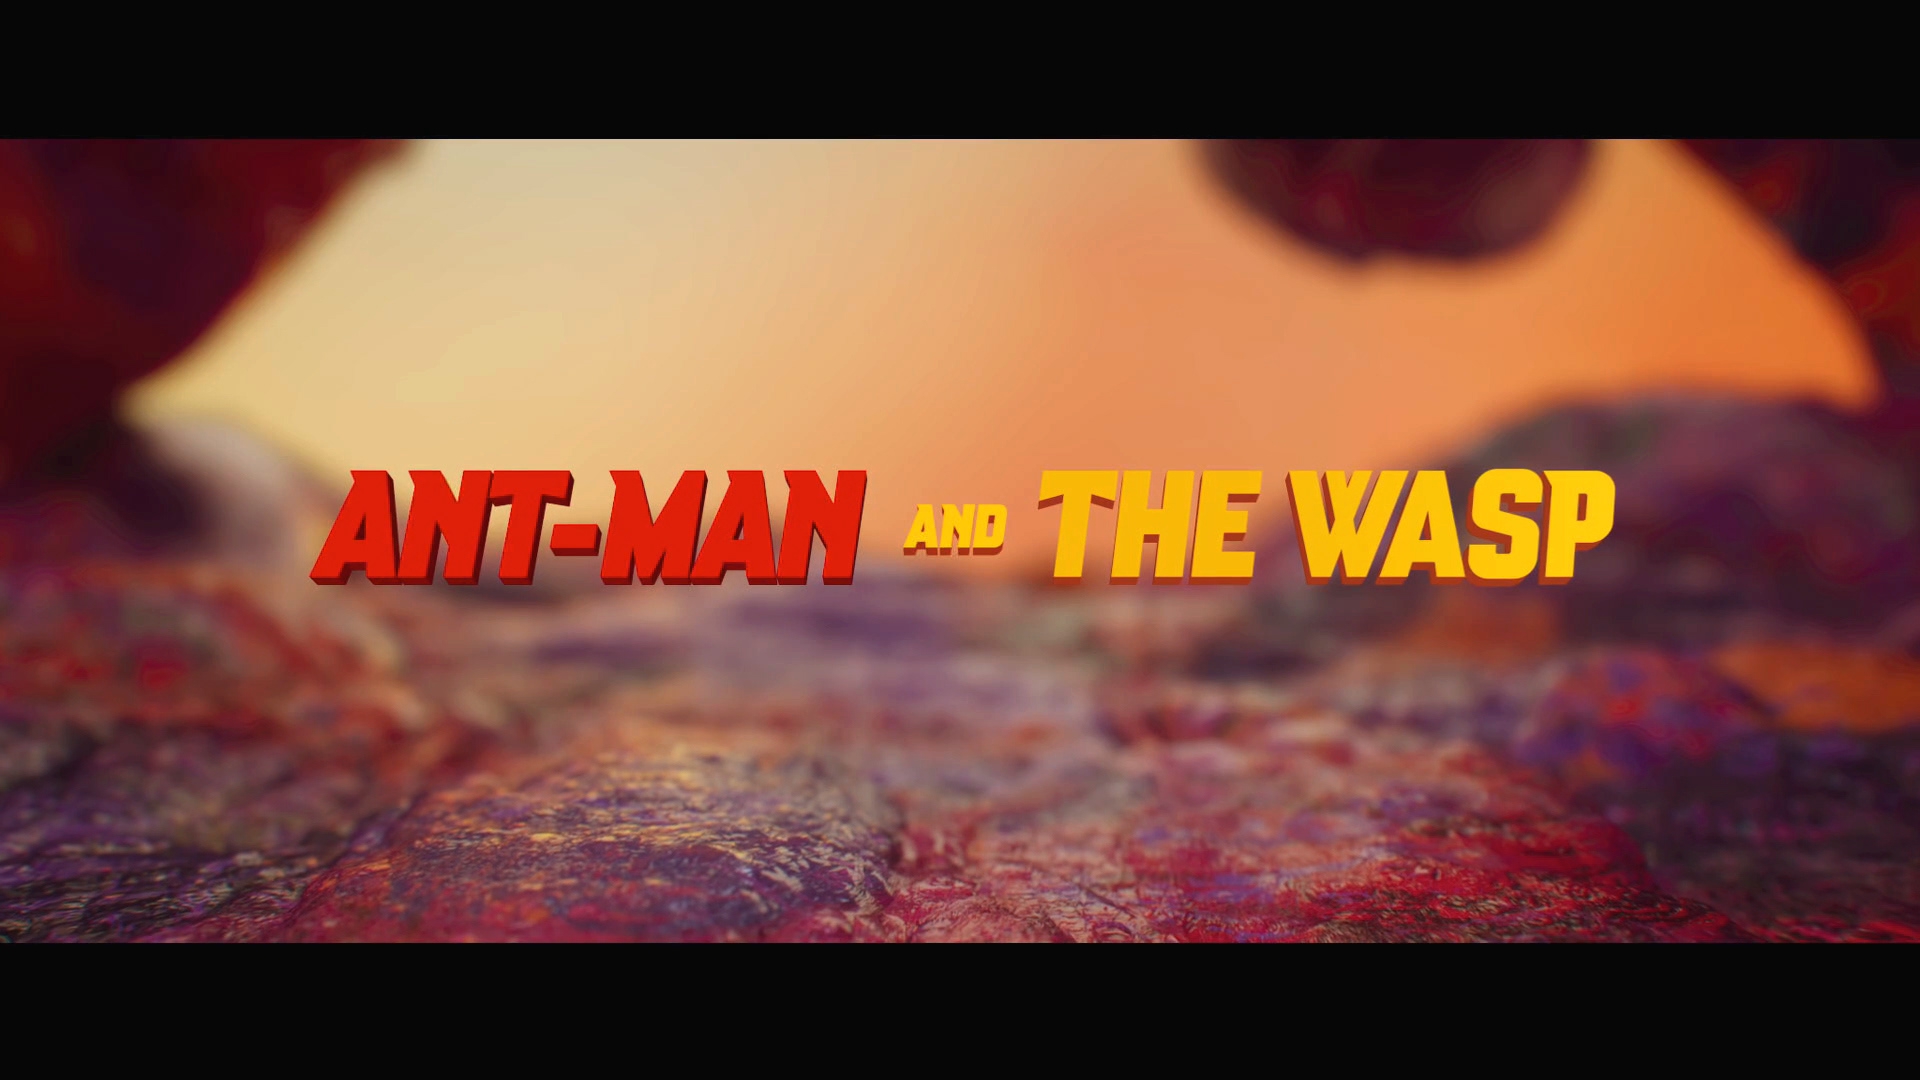 Ant-Man and the Wasp Main-on-End Title Sequence on Behance